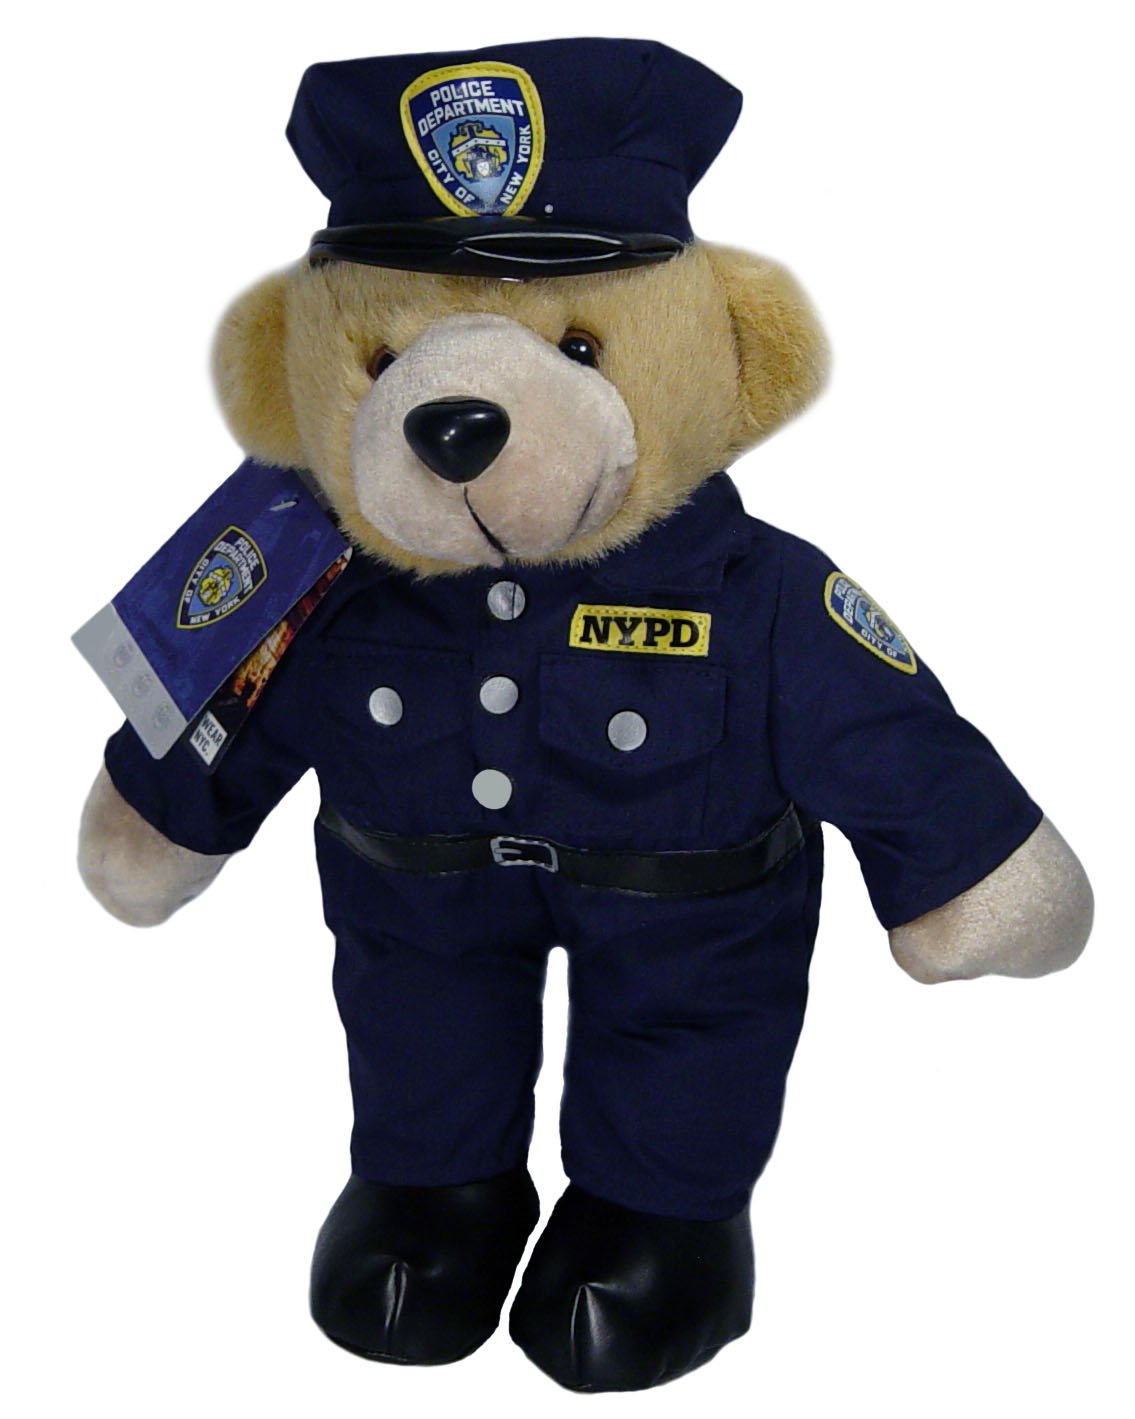 amazon com nypd teddy bear stuffed animal officially licensed by